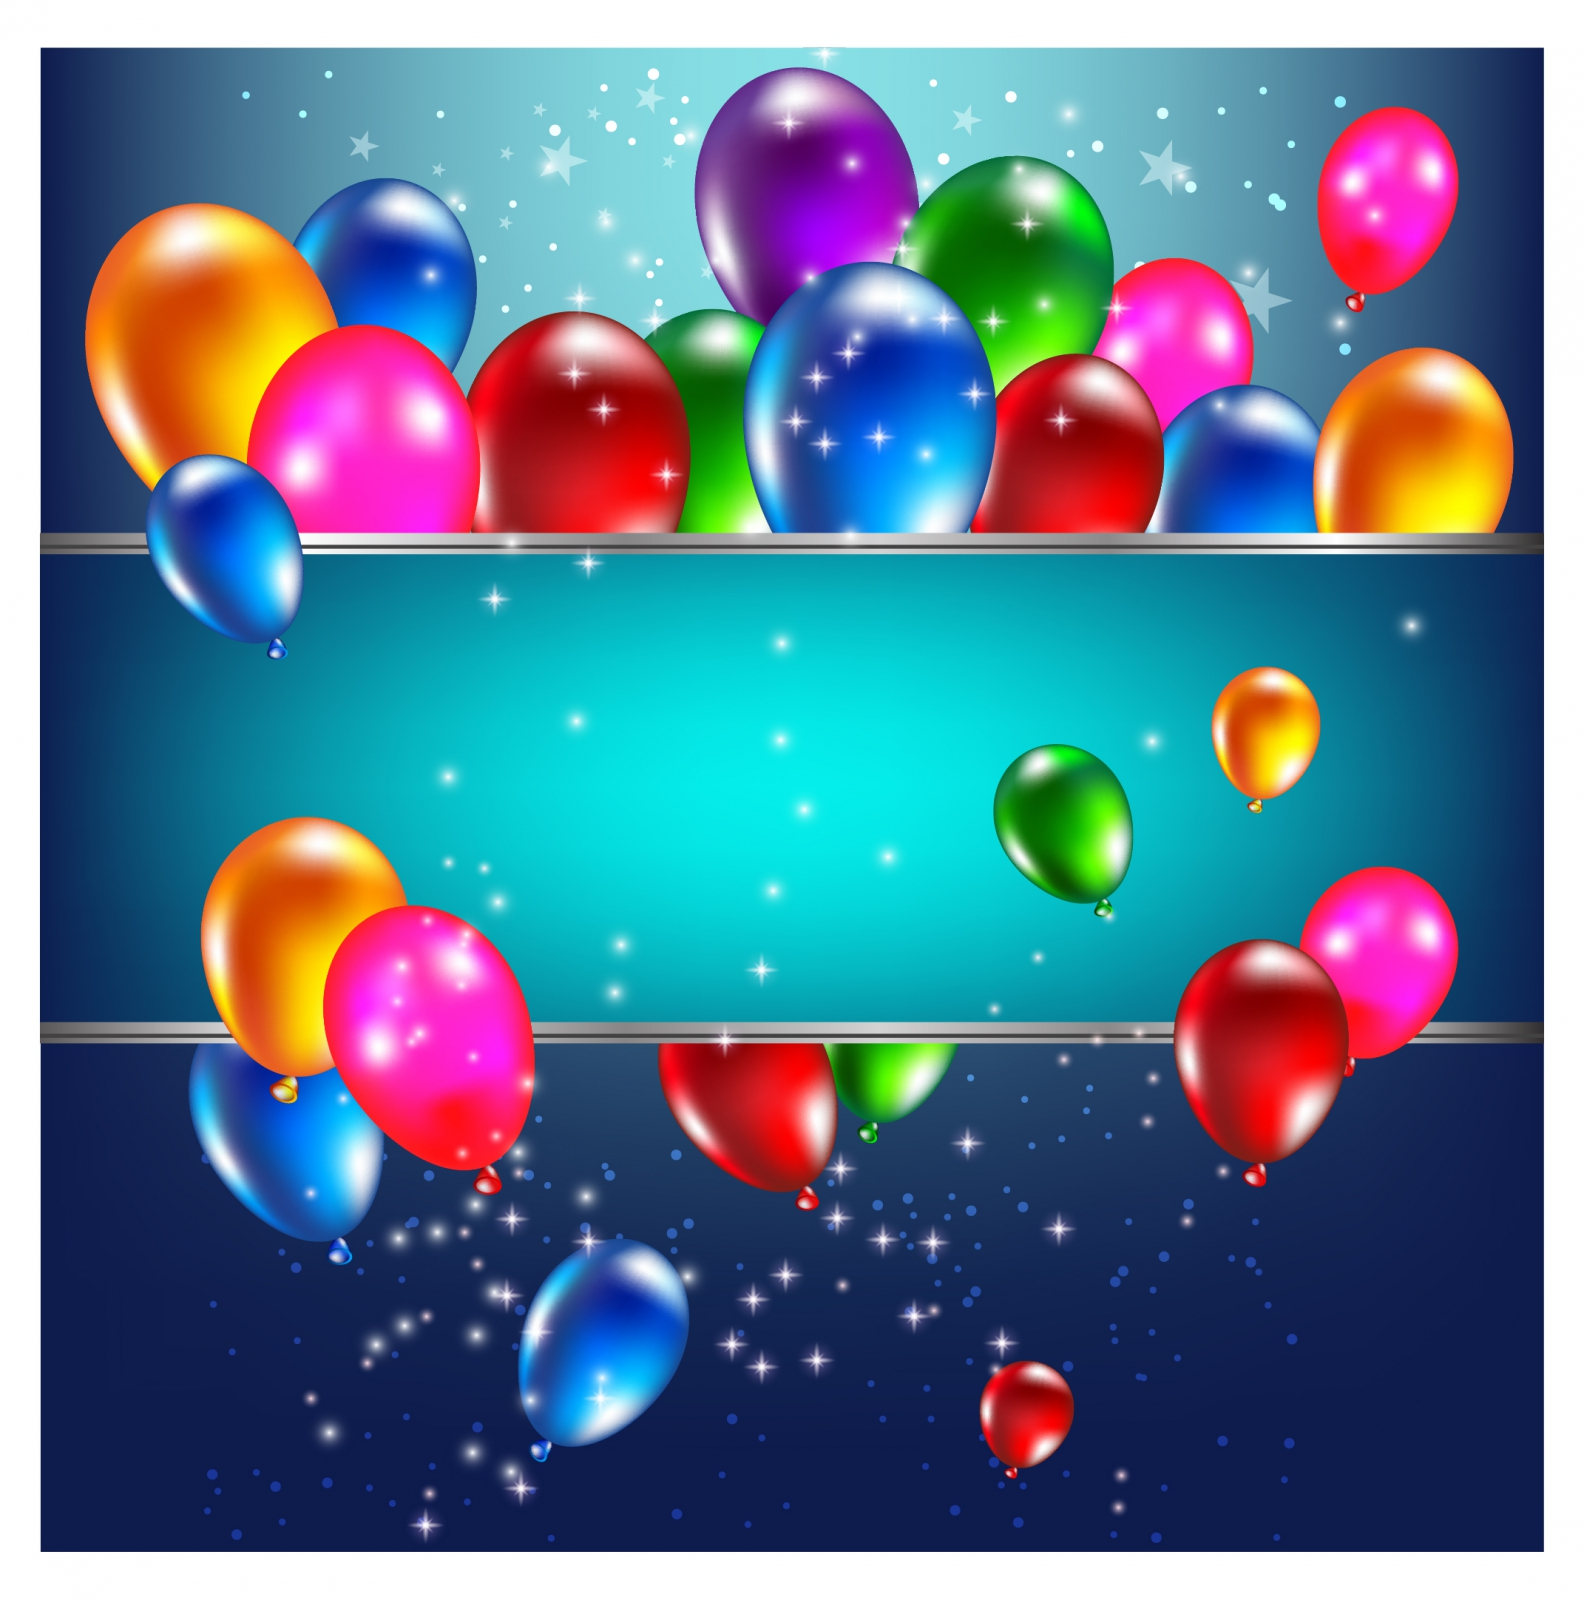 Free Birthday Background Images Wallpapersafari